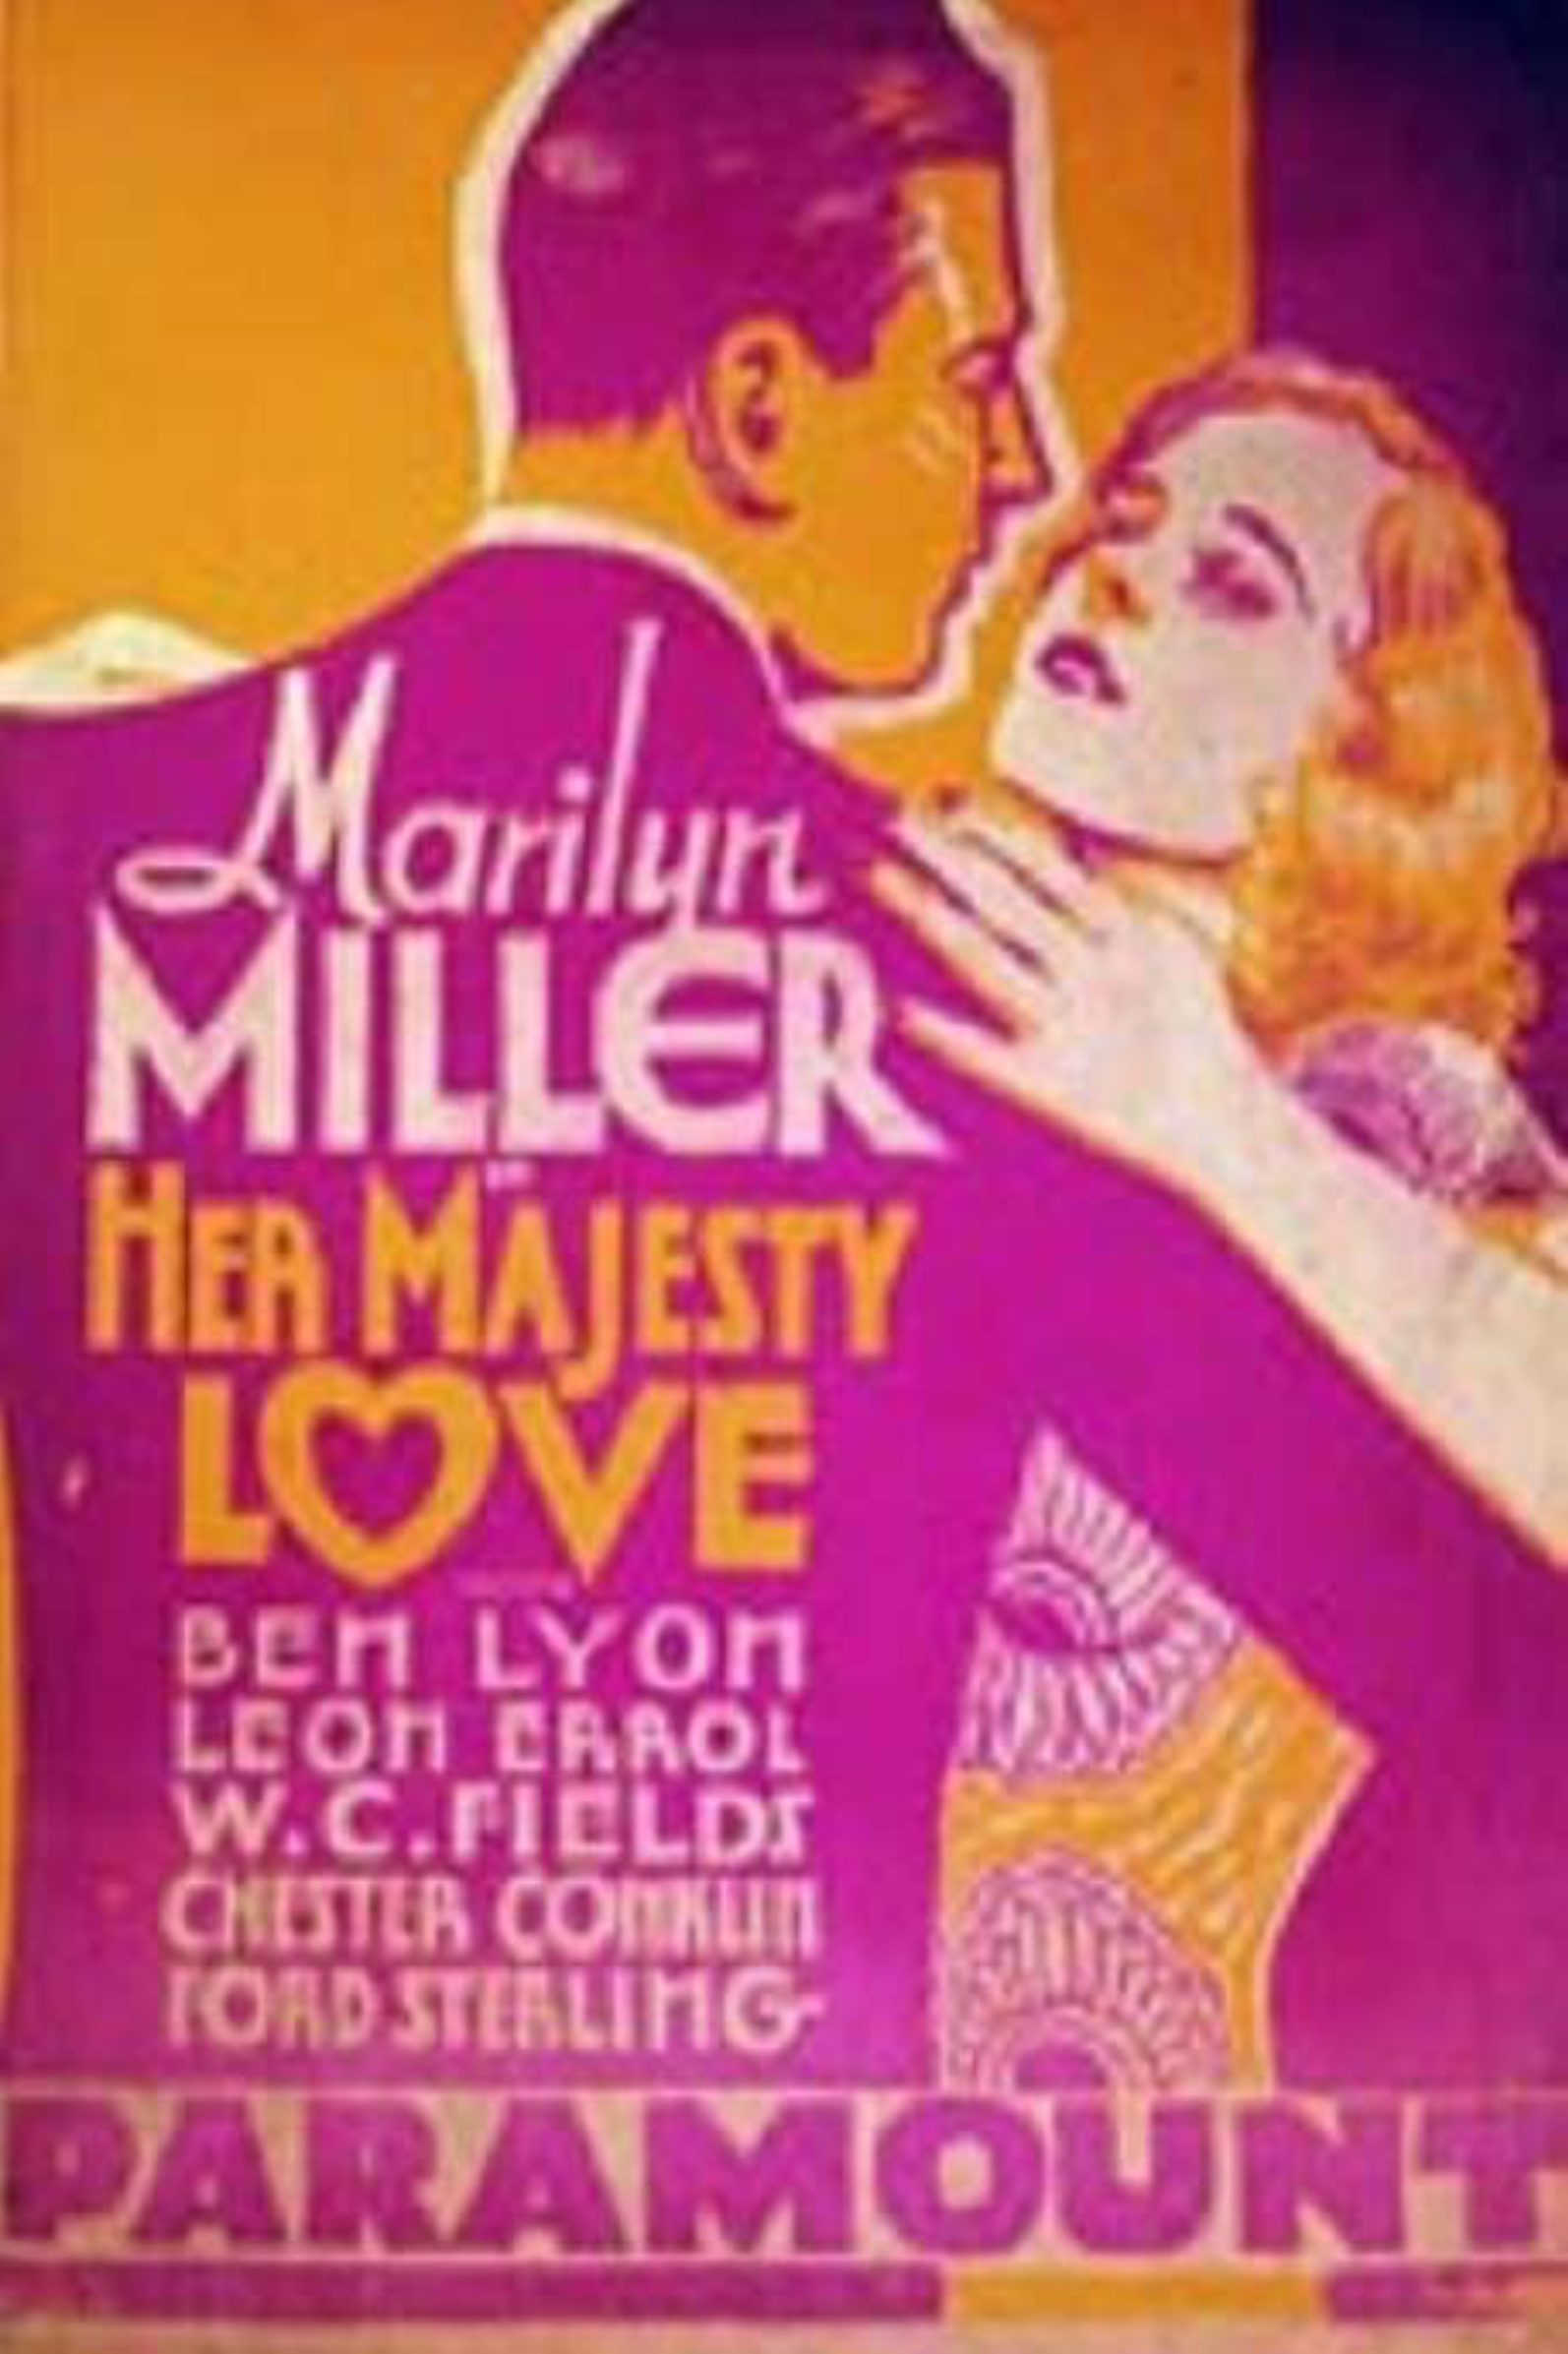 Her Majesty, Love (1931)